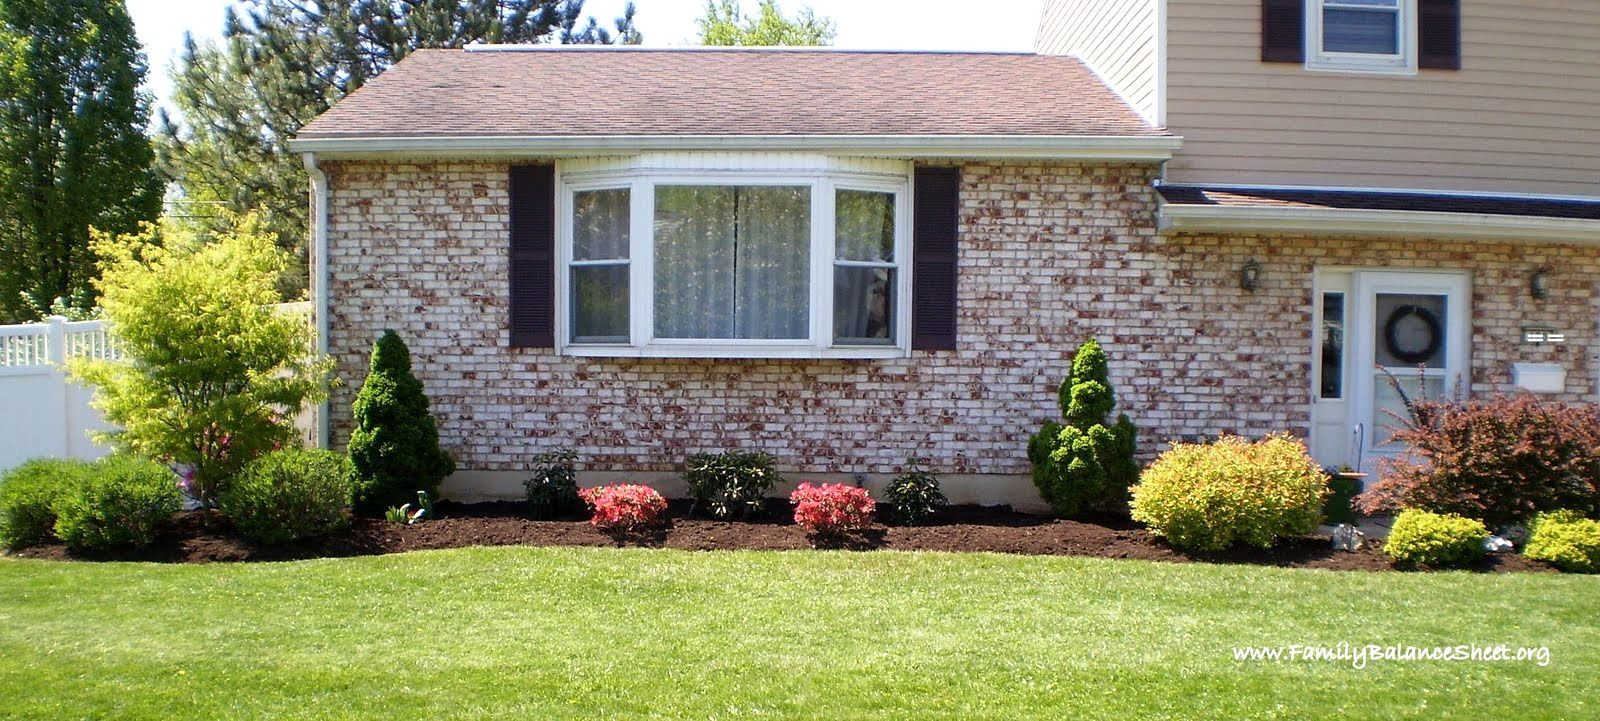 Simple landscaping ideas for ranch style home www Simple landscaping for backyard